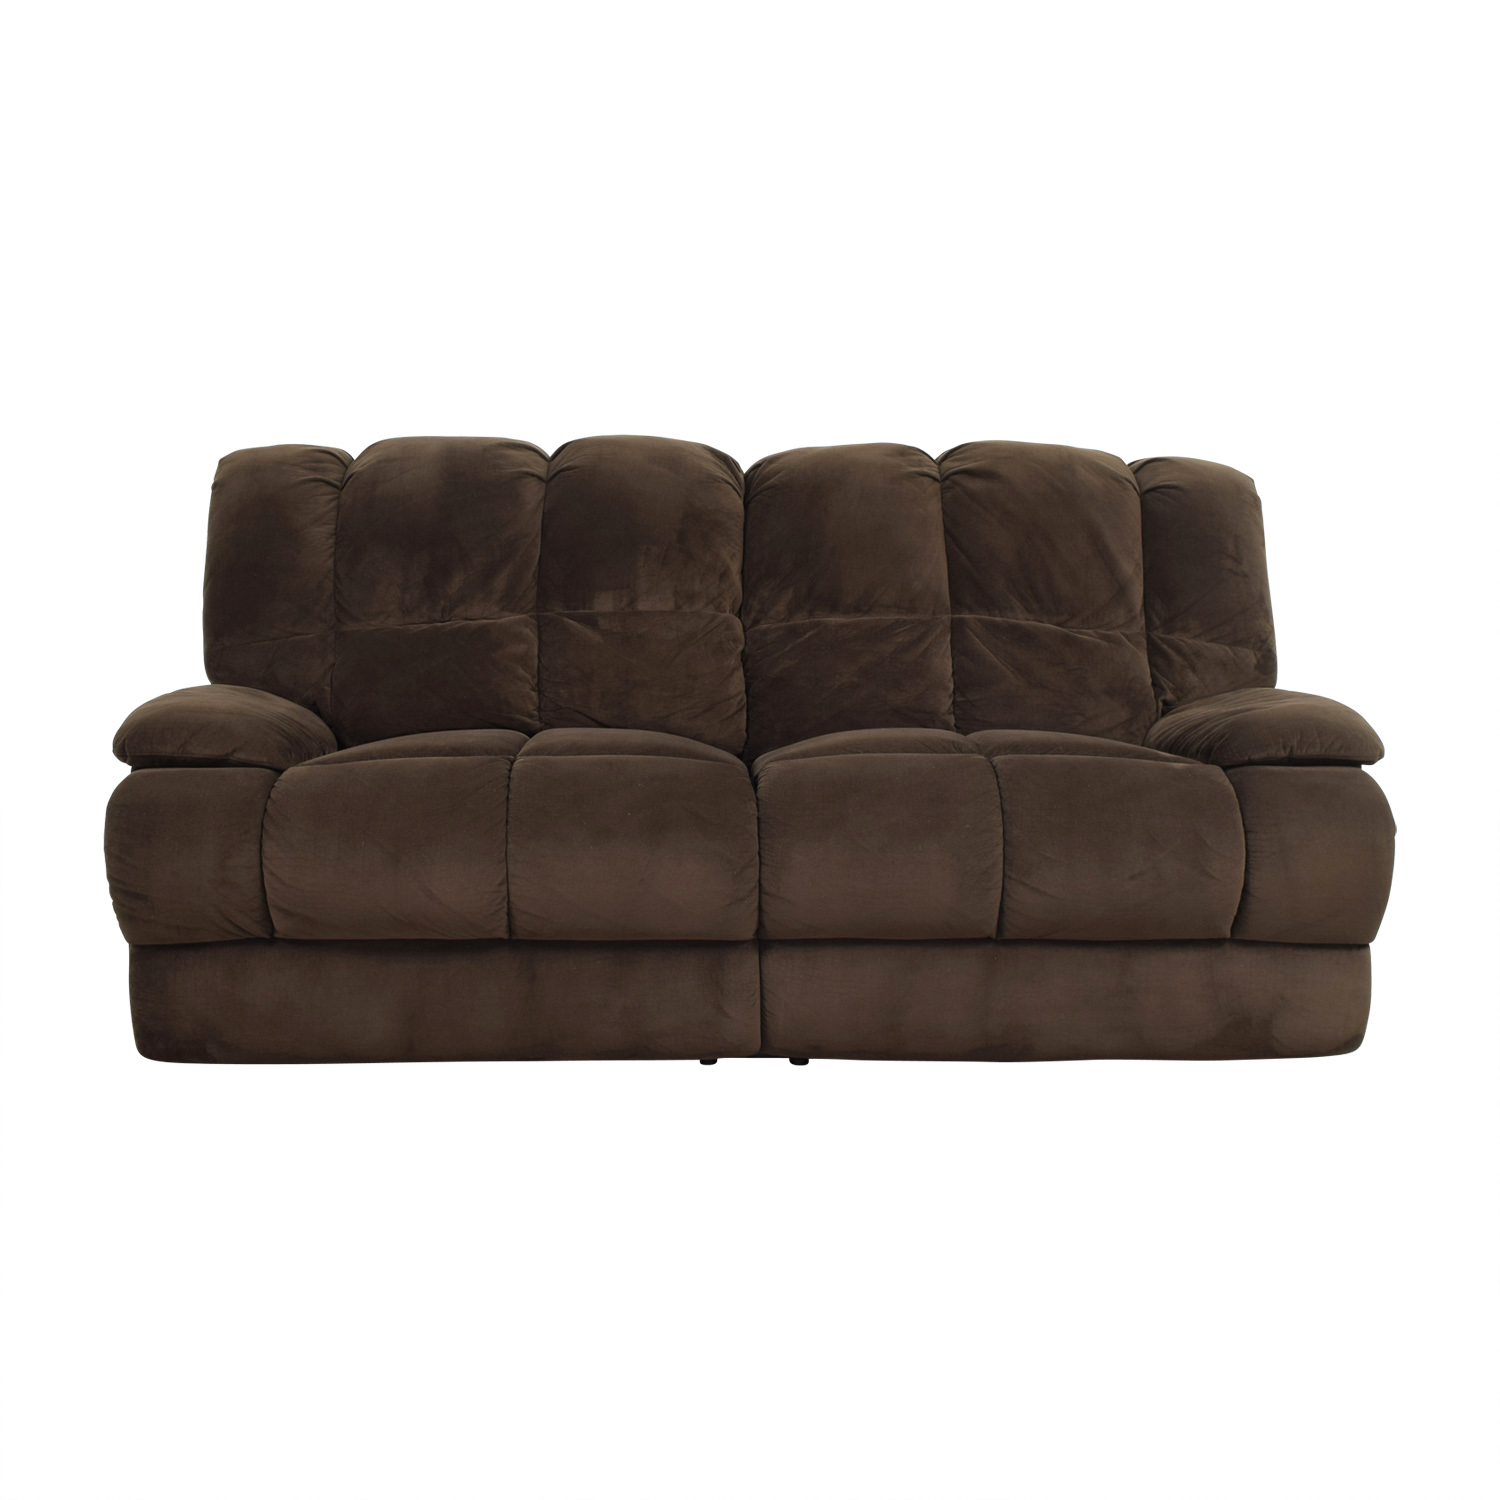 American Signature Furniture Brown Recliner Sofa Chairs